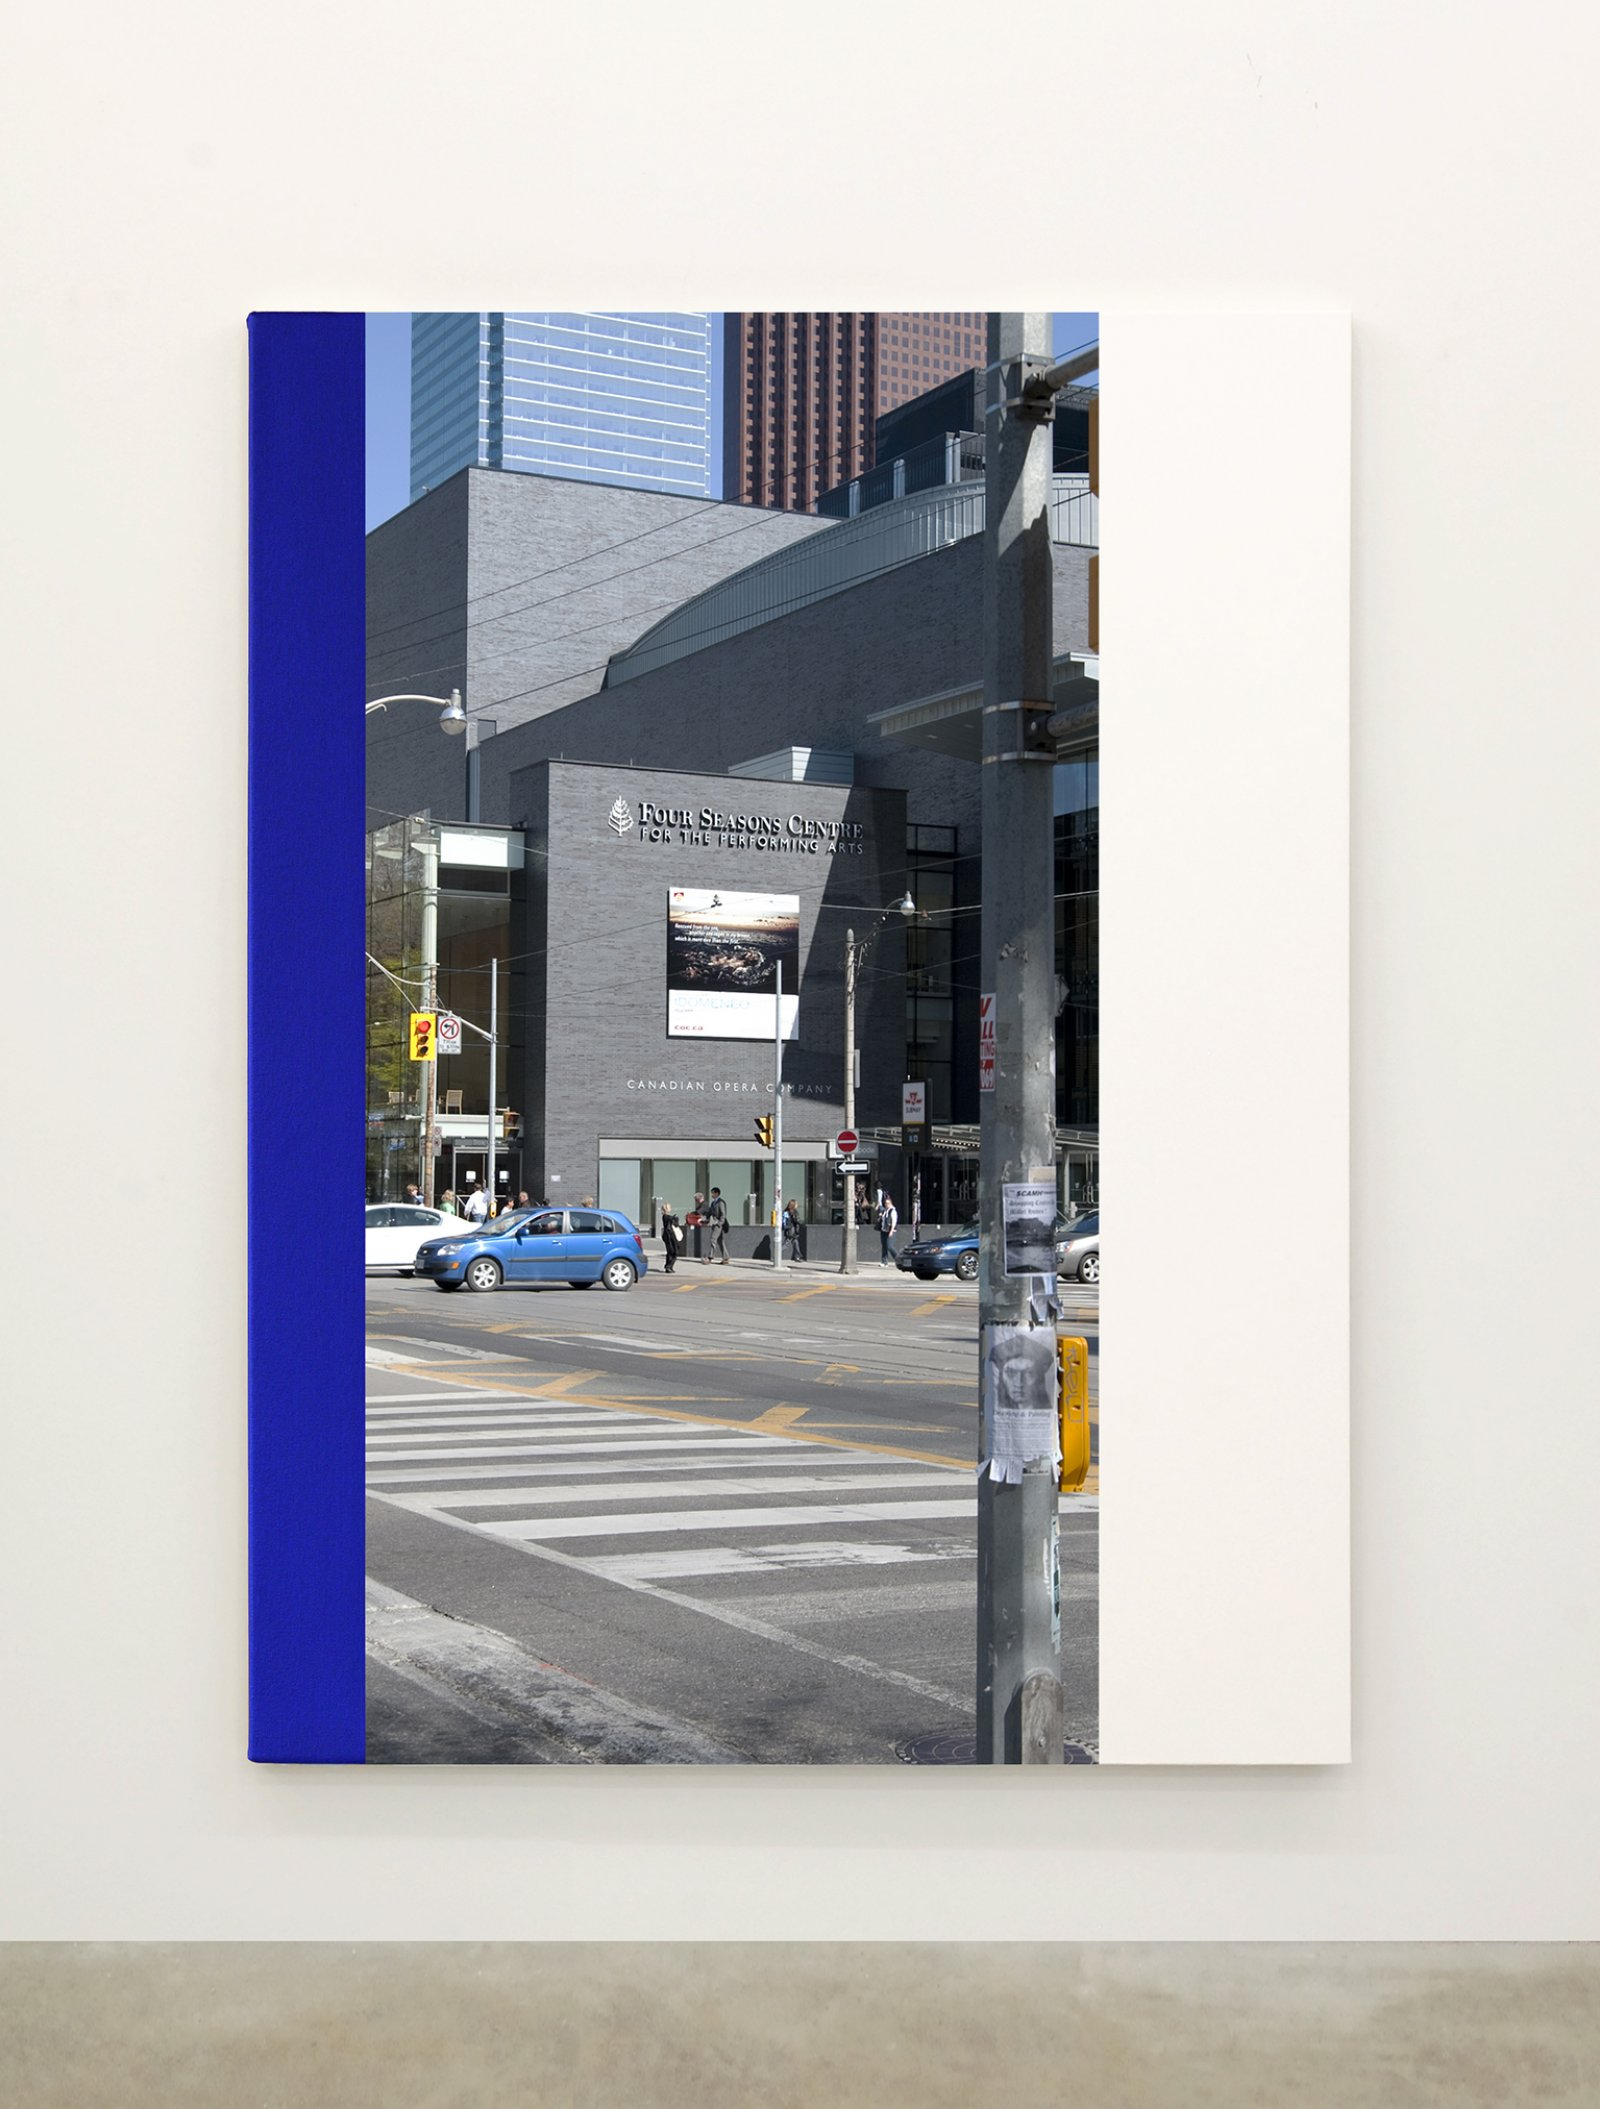 Ian Wallace,Abstract Painting VII(The Financial District), 2010,12 photolaminate with acrylic on canvas panels, each 96 x 72 in. (244 x 183 cm)